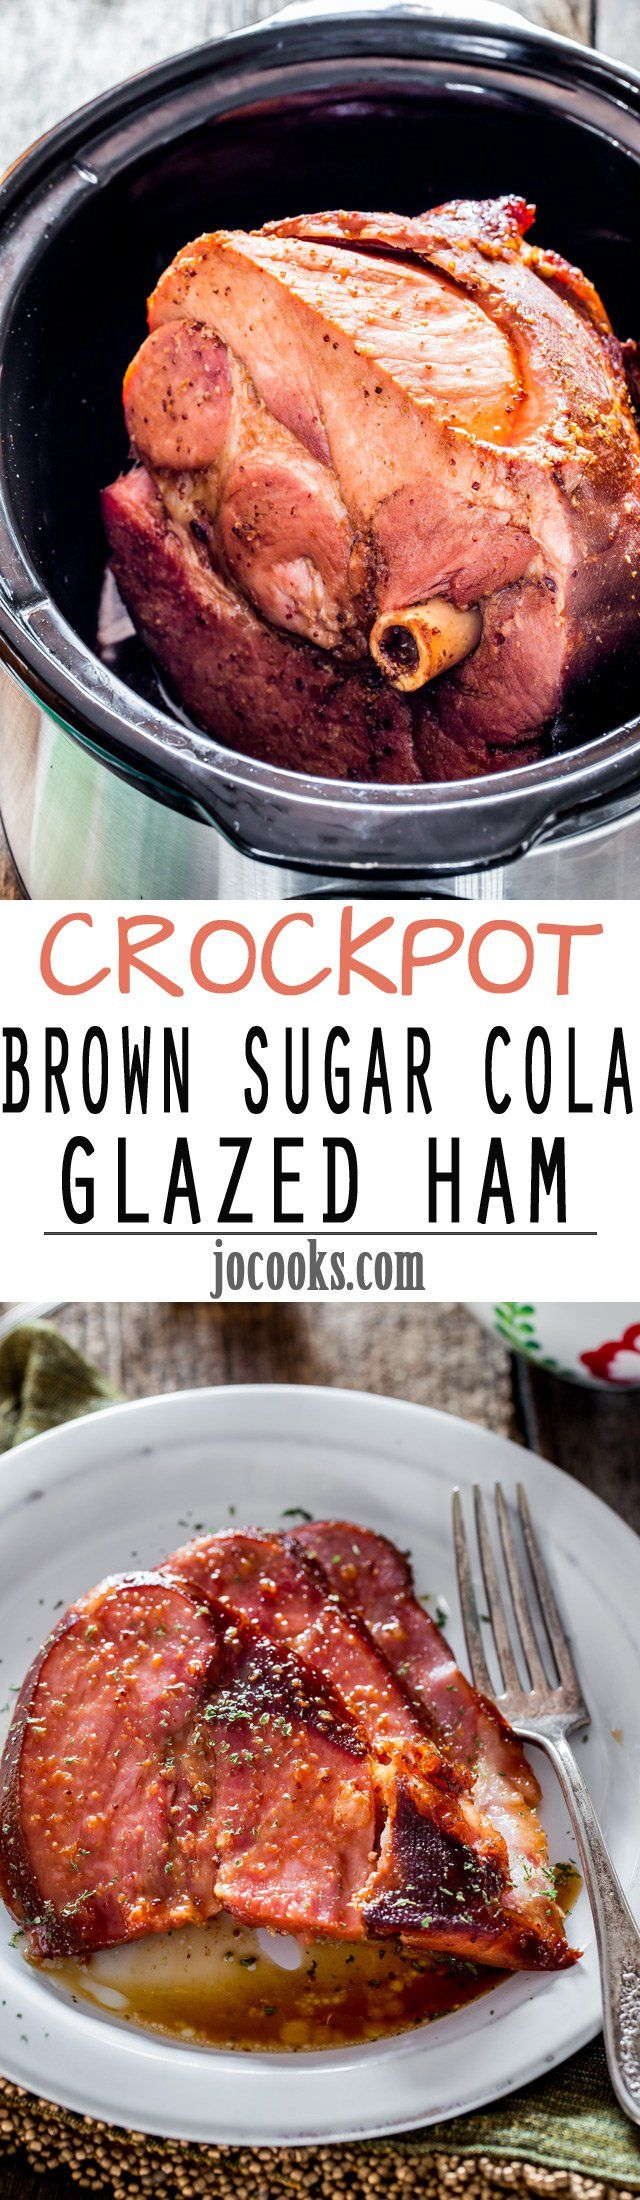 Crockpot Brown Sugar Cola Glazed Ham - 5 minutes of prep time is all you need to make this incredible brown sugar and cola glaze then pour it over the ham, set it and forget it for a few hours. When it's done you'll be rewarded with the most tender and delicious crockpot ham ever.